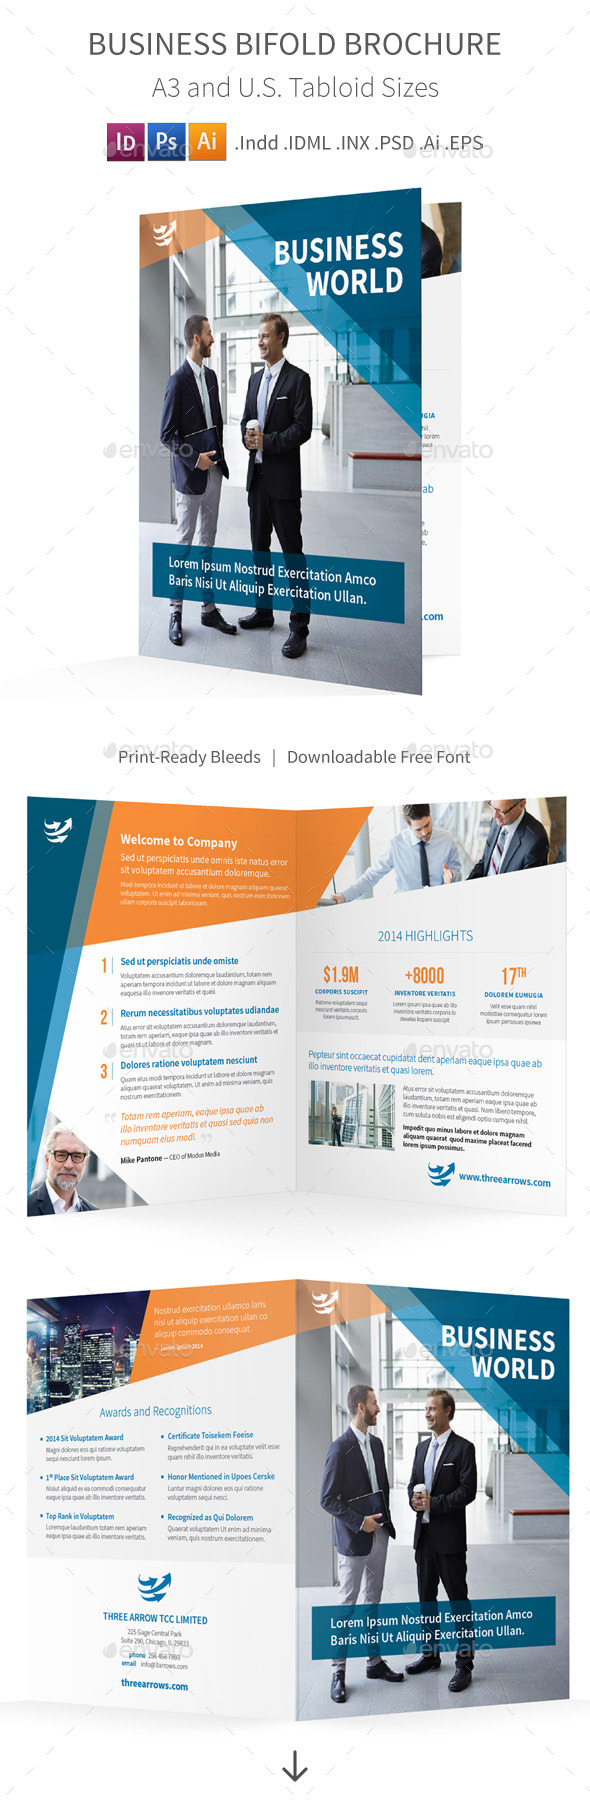 Business Bifold Halffold Brochure